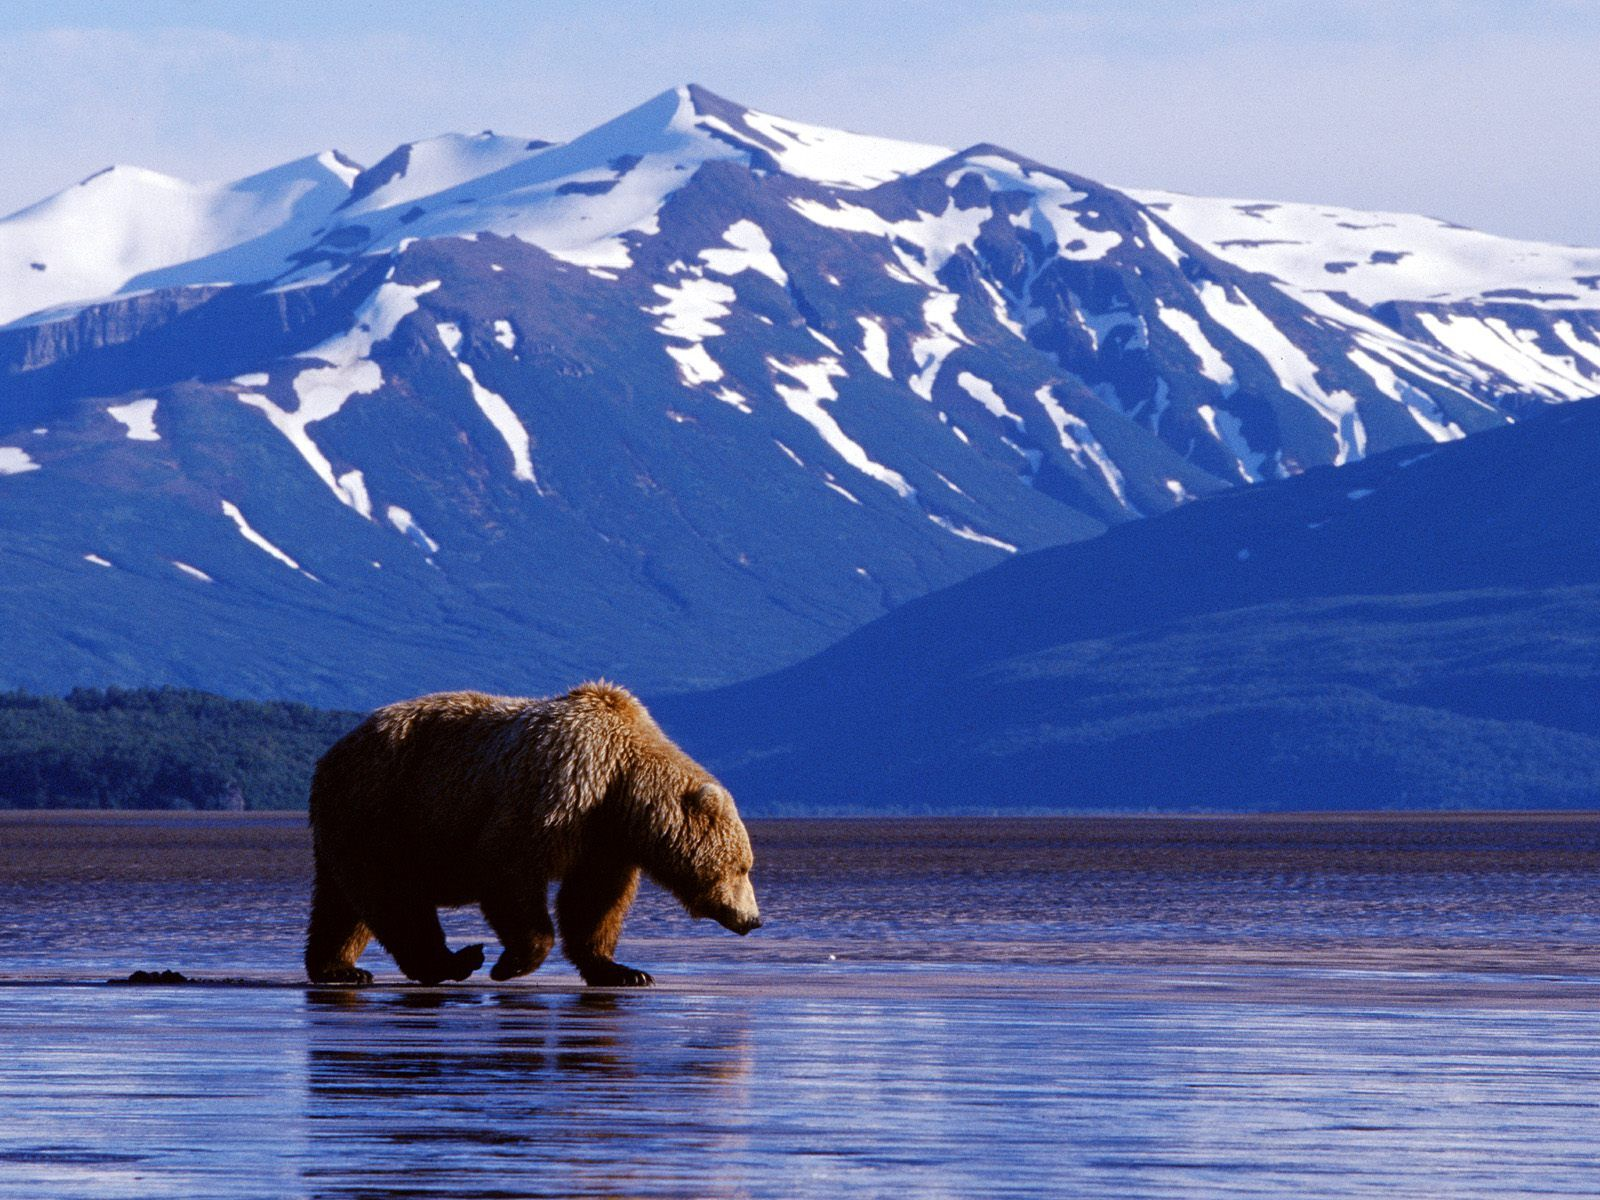 bear in alaska wallpaper and background image | 1600x1200 | id:81097